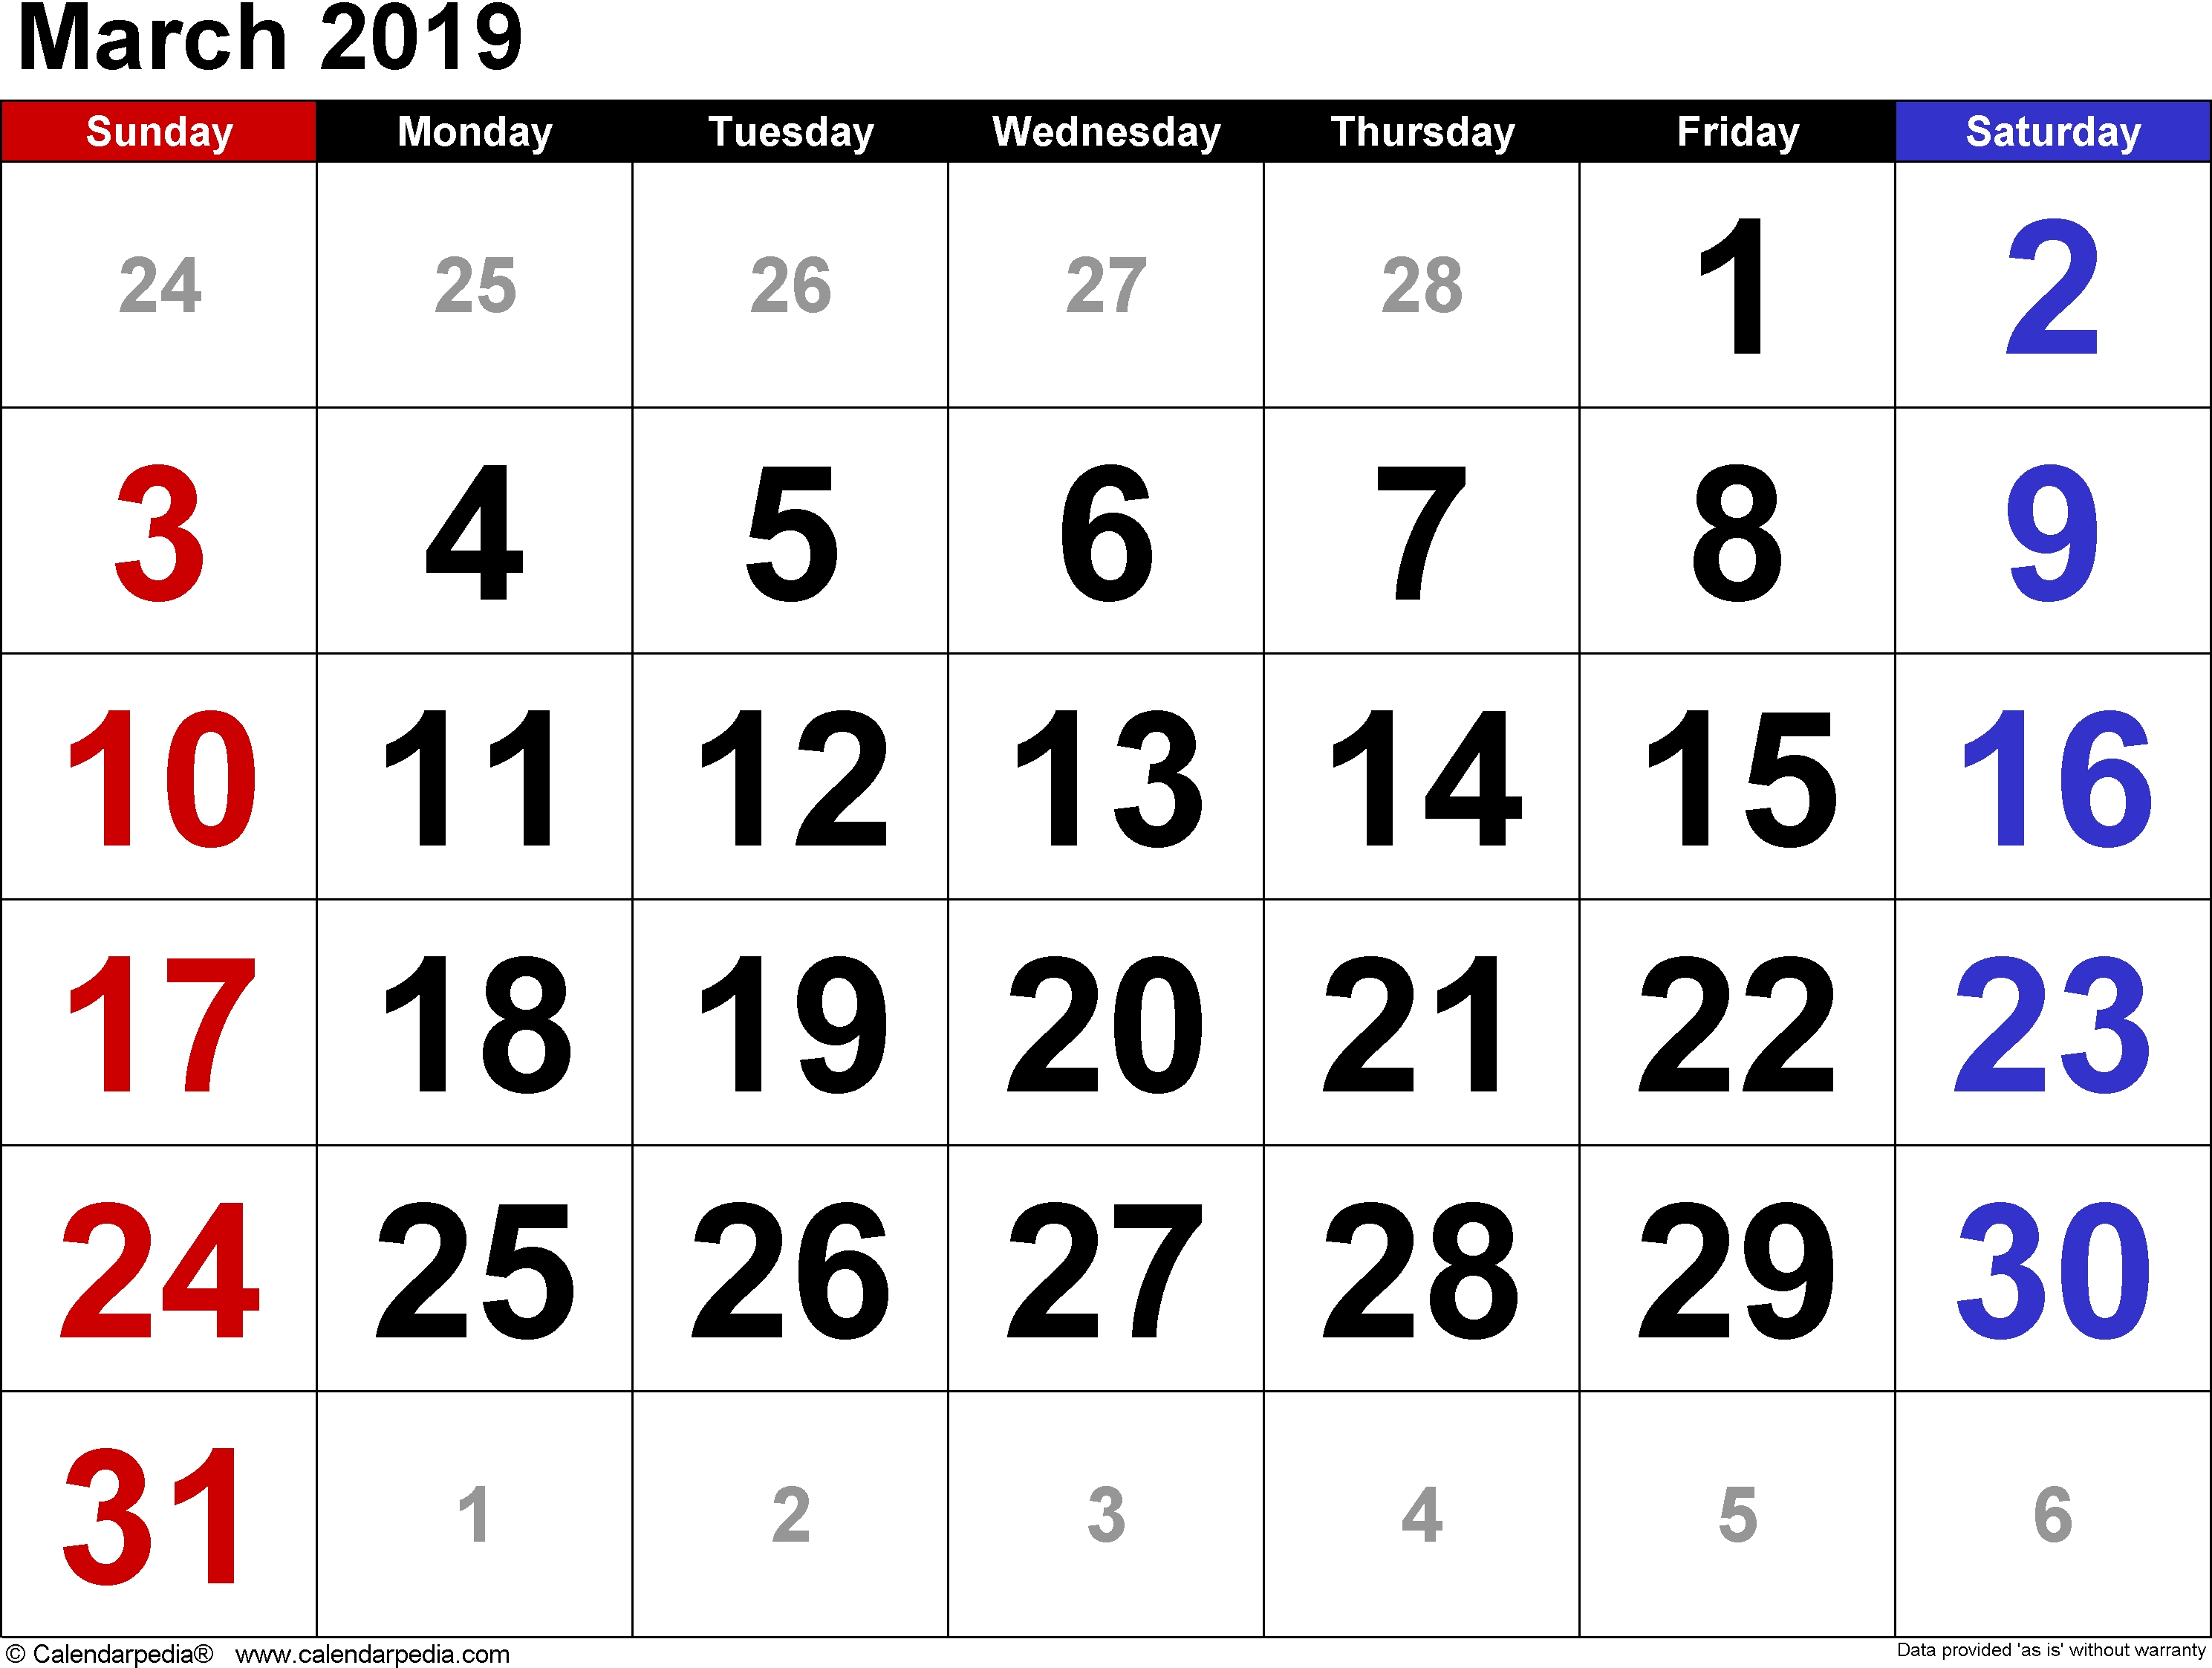 Get Free Template March 2019 A4 Calendar - Free Calendar And Holidays March 2 2019 Calendar